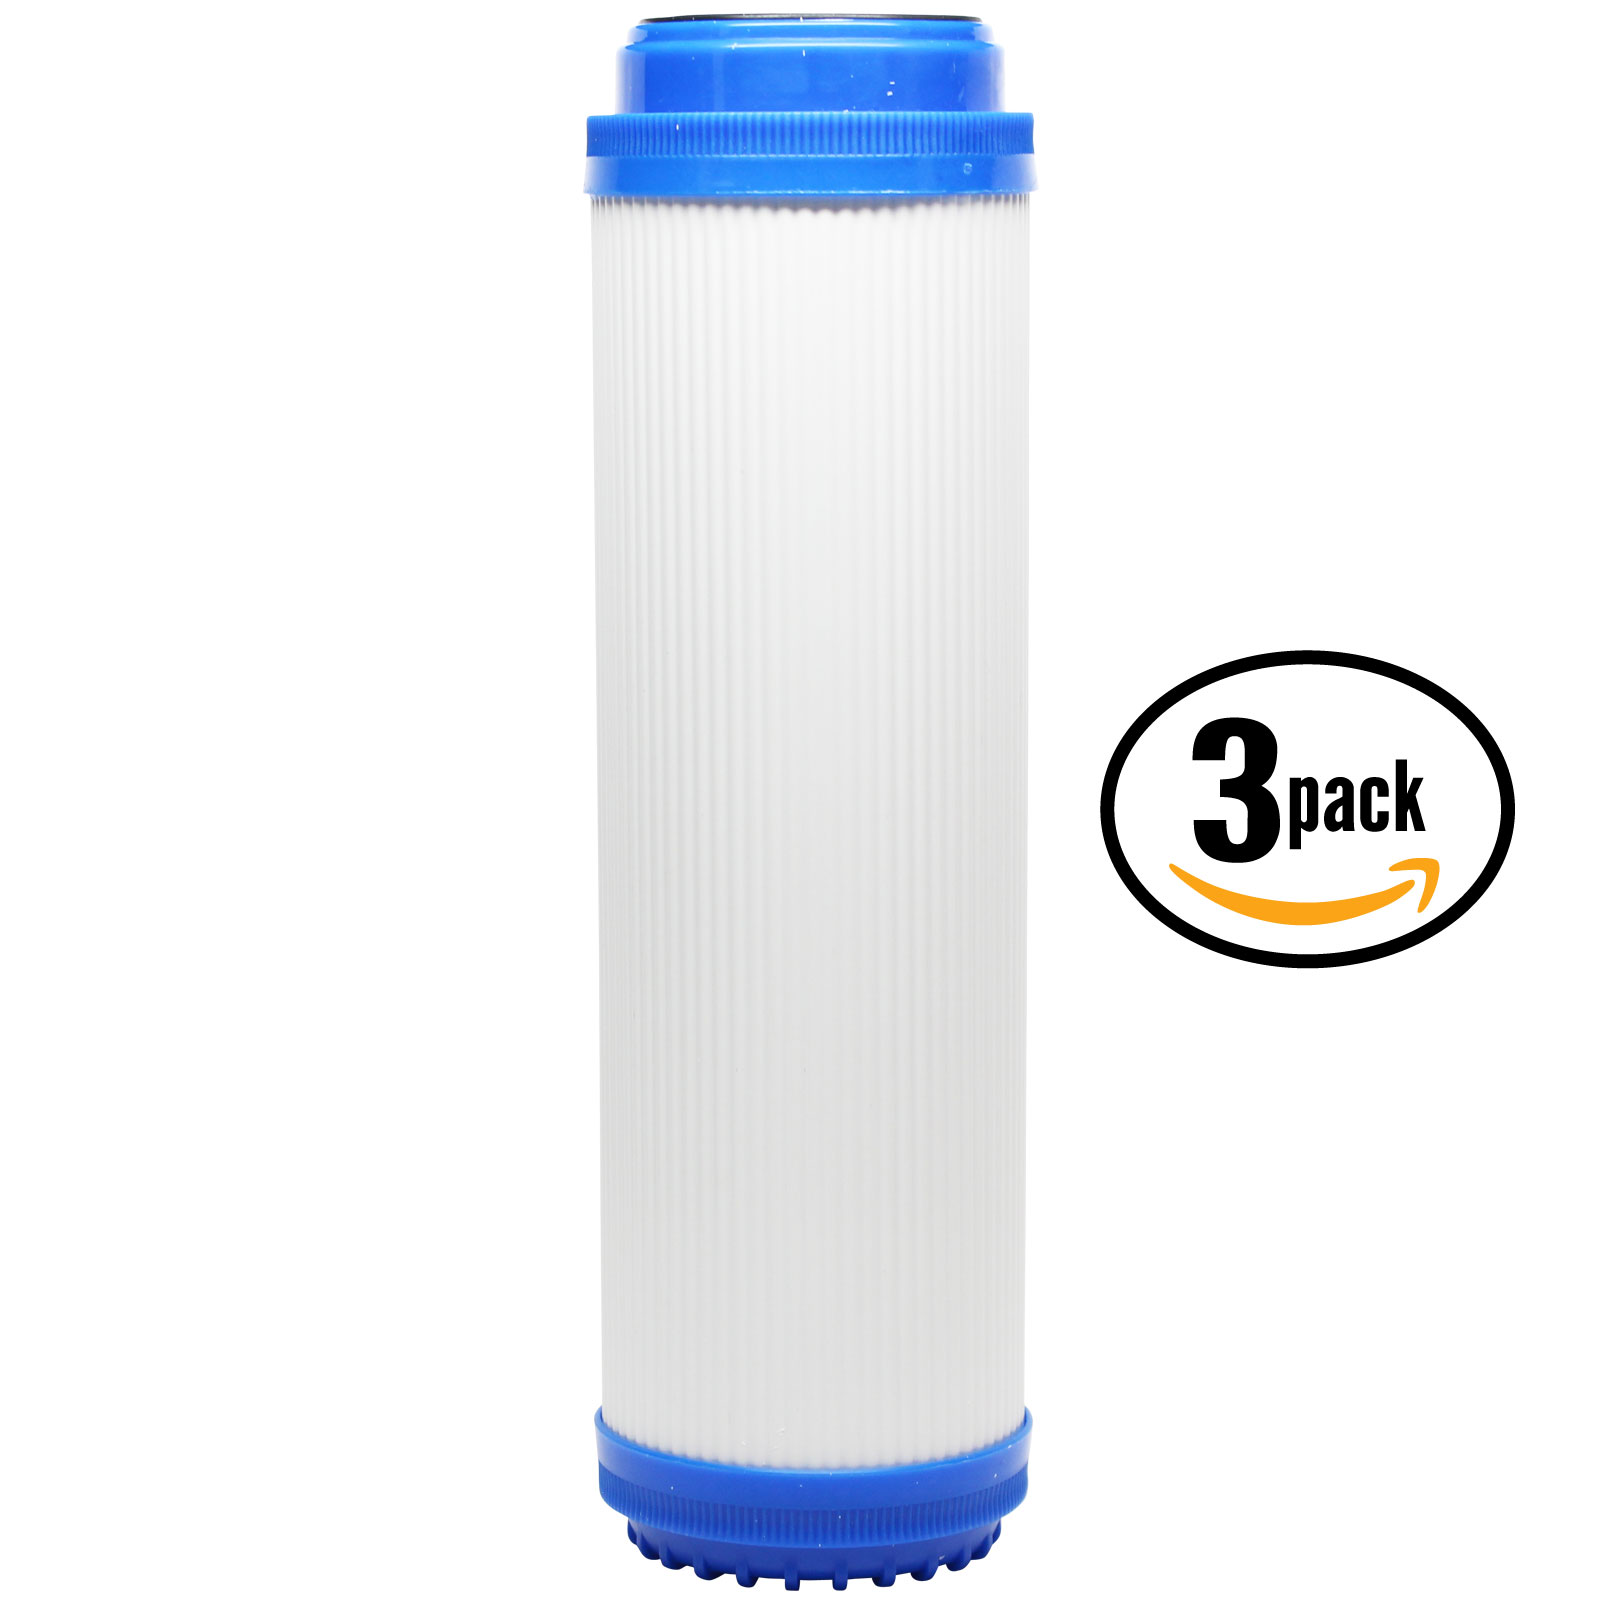 3-Pack Replacement WaterPur CCI-10-CLW Granular Activated Carbon Filter - Universal 10-inch Cartridge for WaterPur Clear Water Filter Housing - Denali Pure Brand